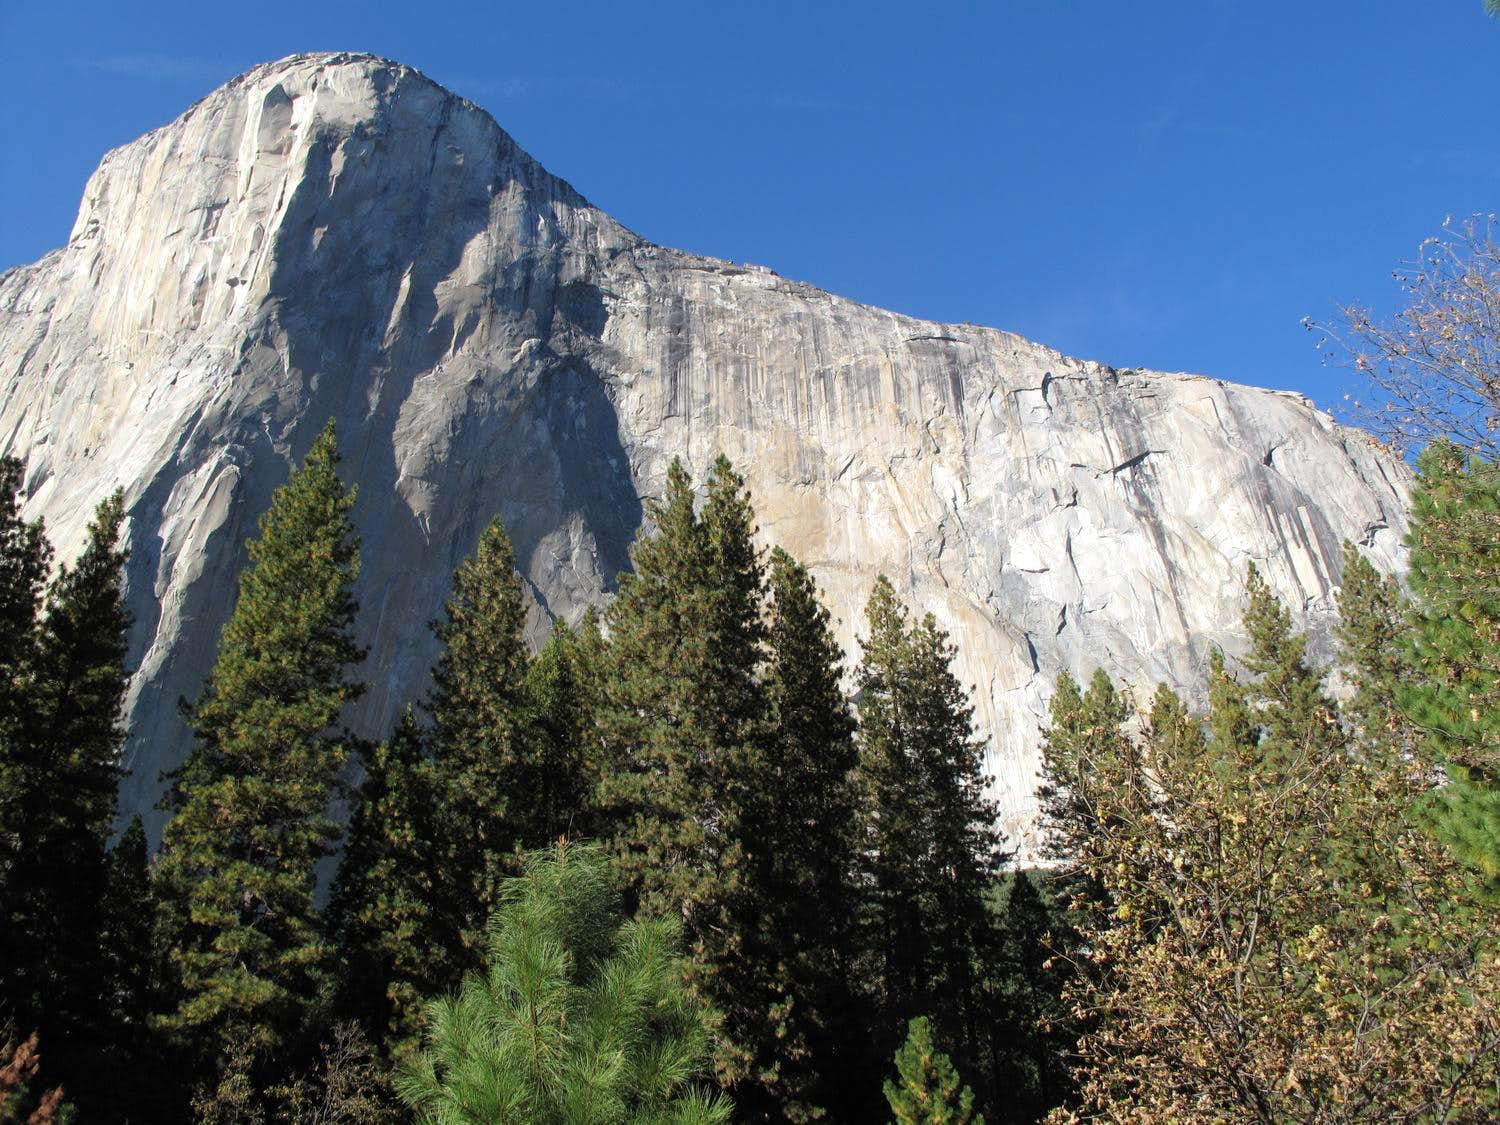 Yosemite National Park - October 2011